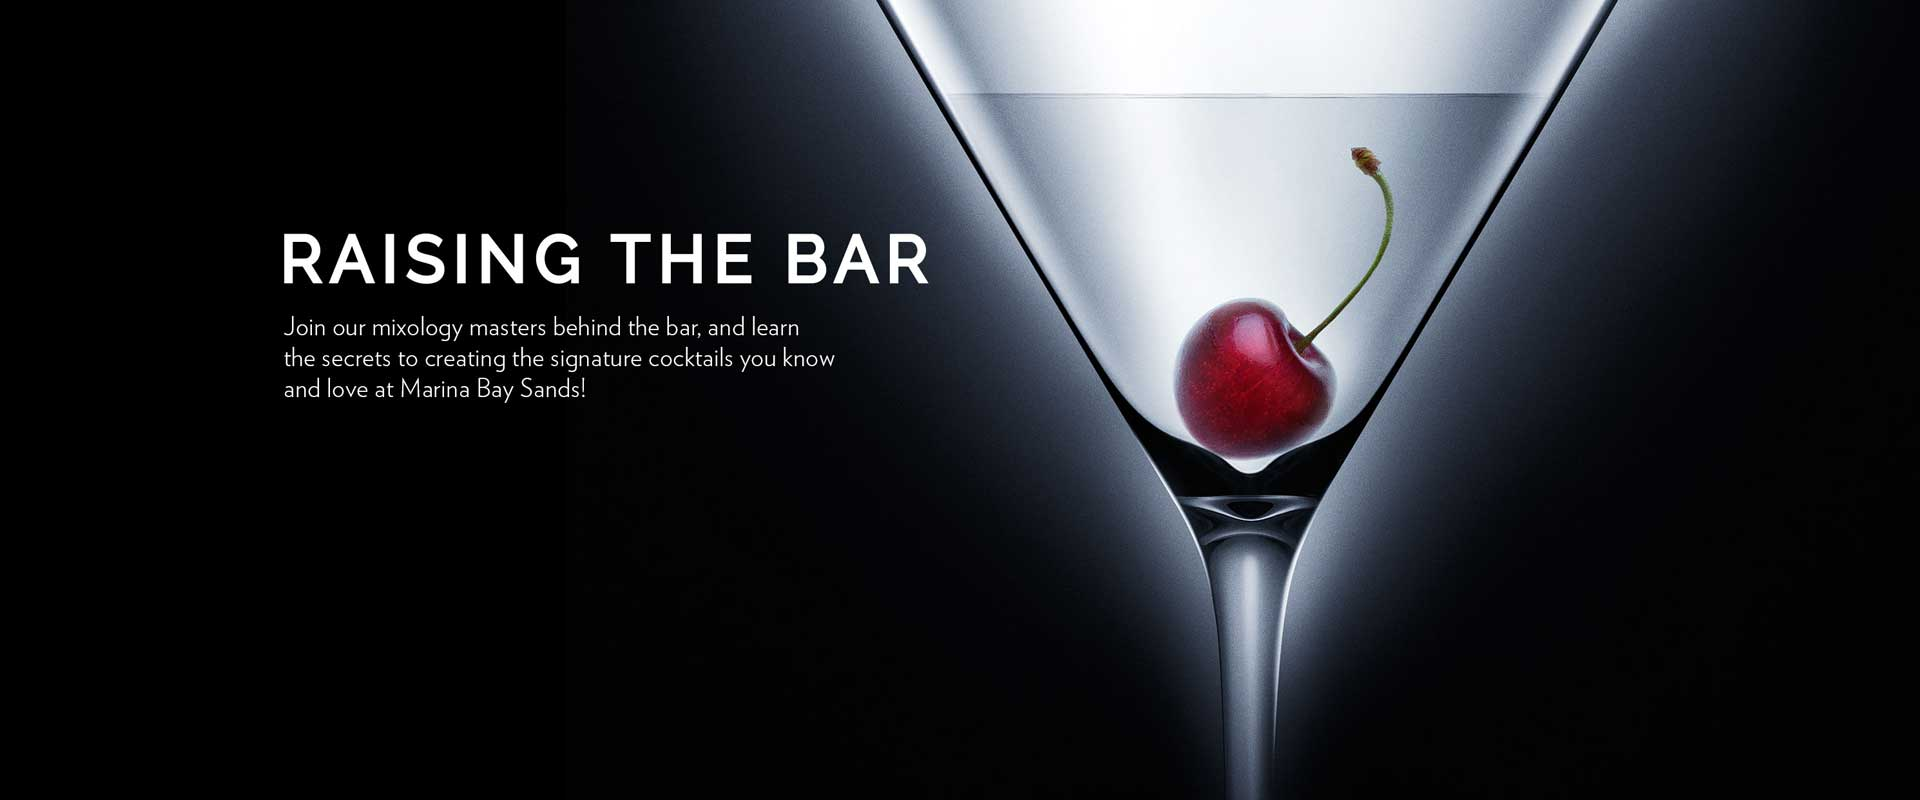 Raising The Bar - Video collection of Marina Bay Sands cocktail recipes